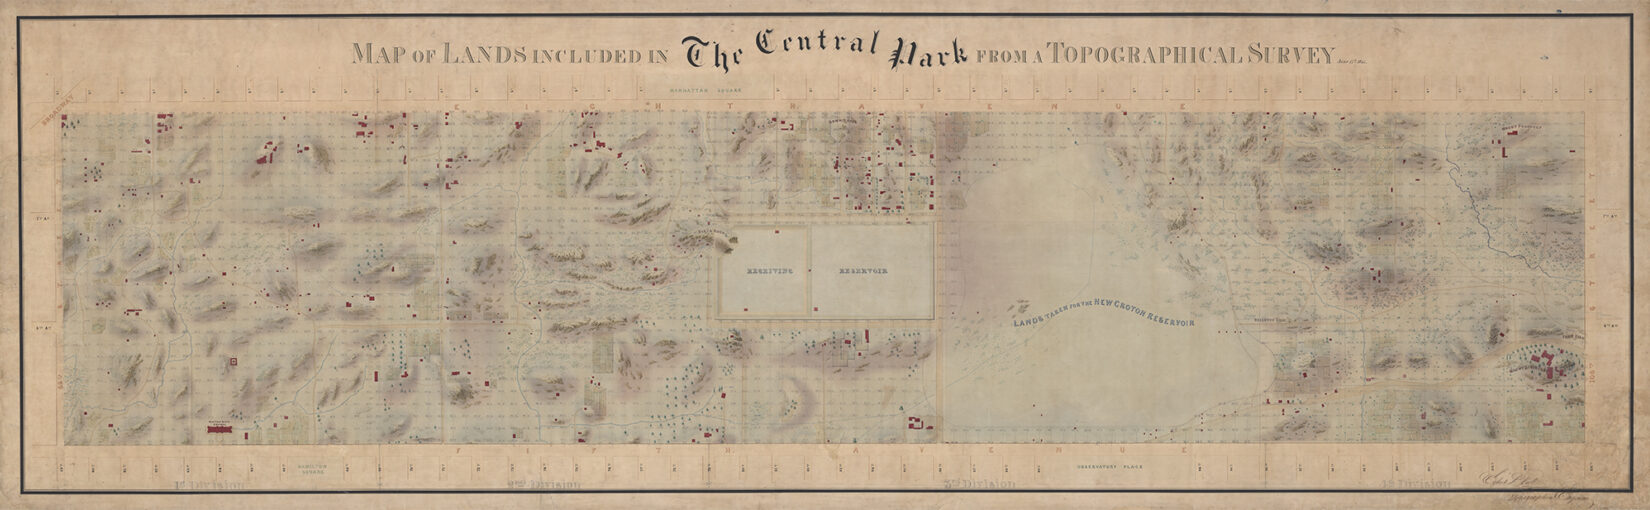 """The map is an engraving from 1855 showing a topographical survey of the land of """"The Central Park"""""""